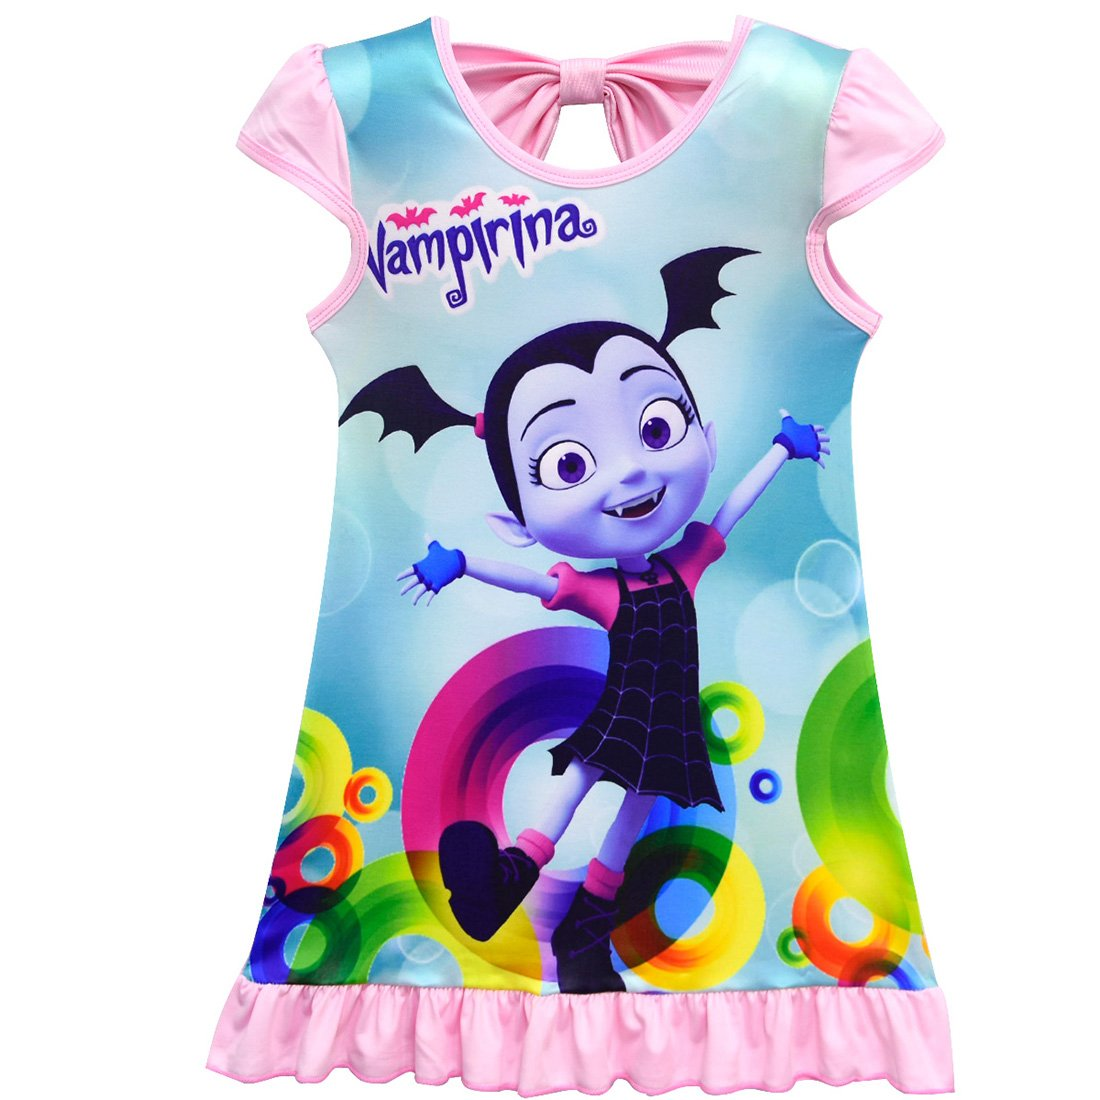 ZHBNN Vampirina Toddler Girls Summer Nightgown Pajamas Party dress(Pink,120/6-7Y)